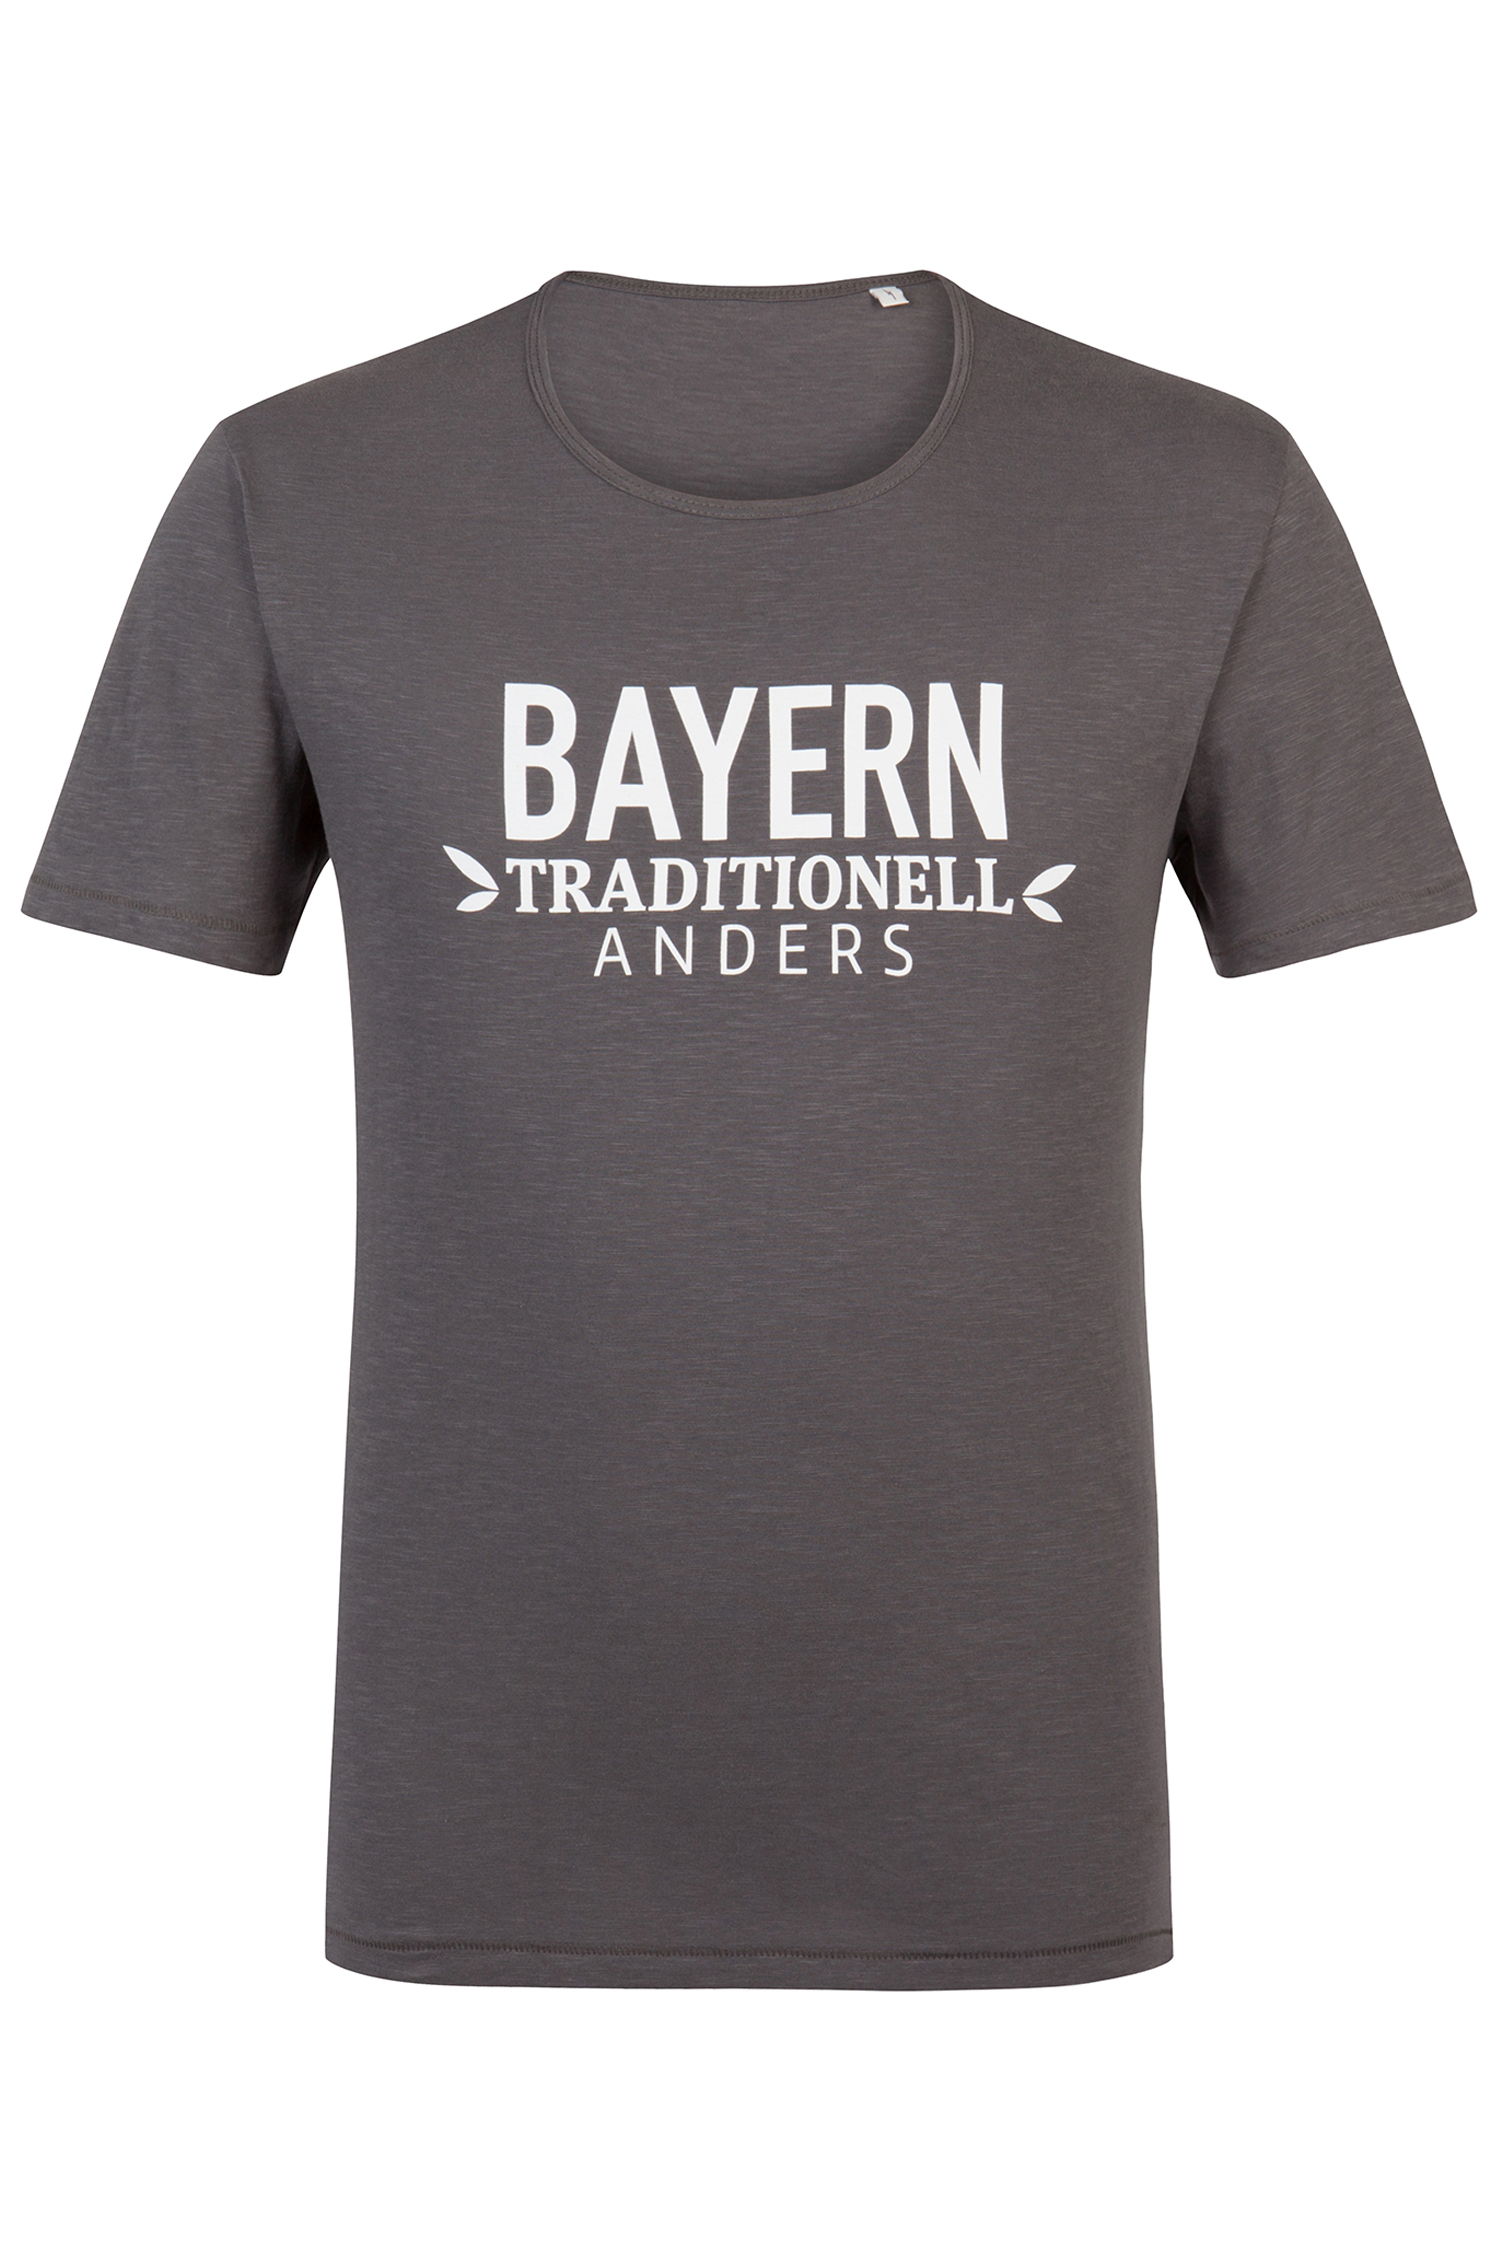 T-Shirt Bayern traditionell anders L | anthra / weiß